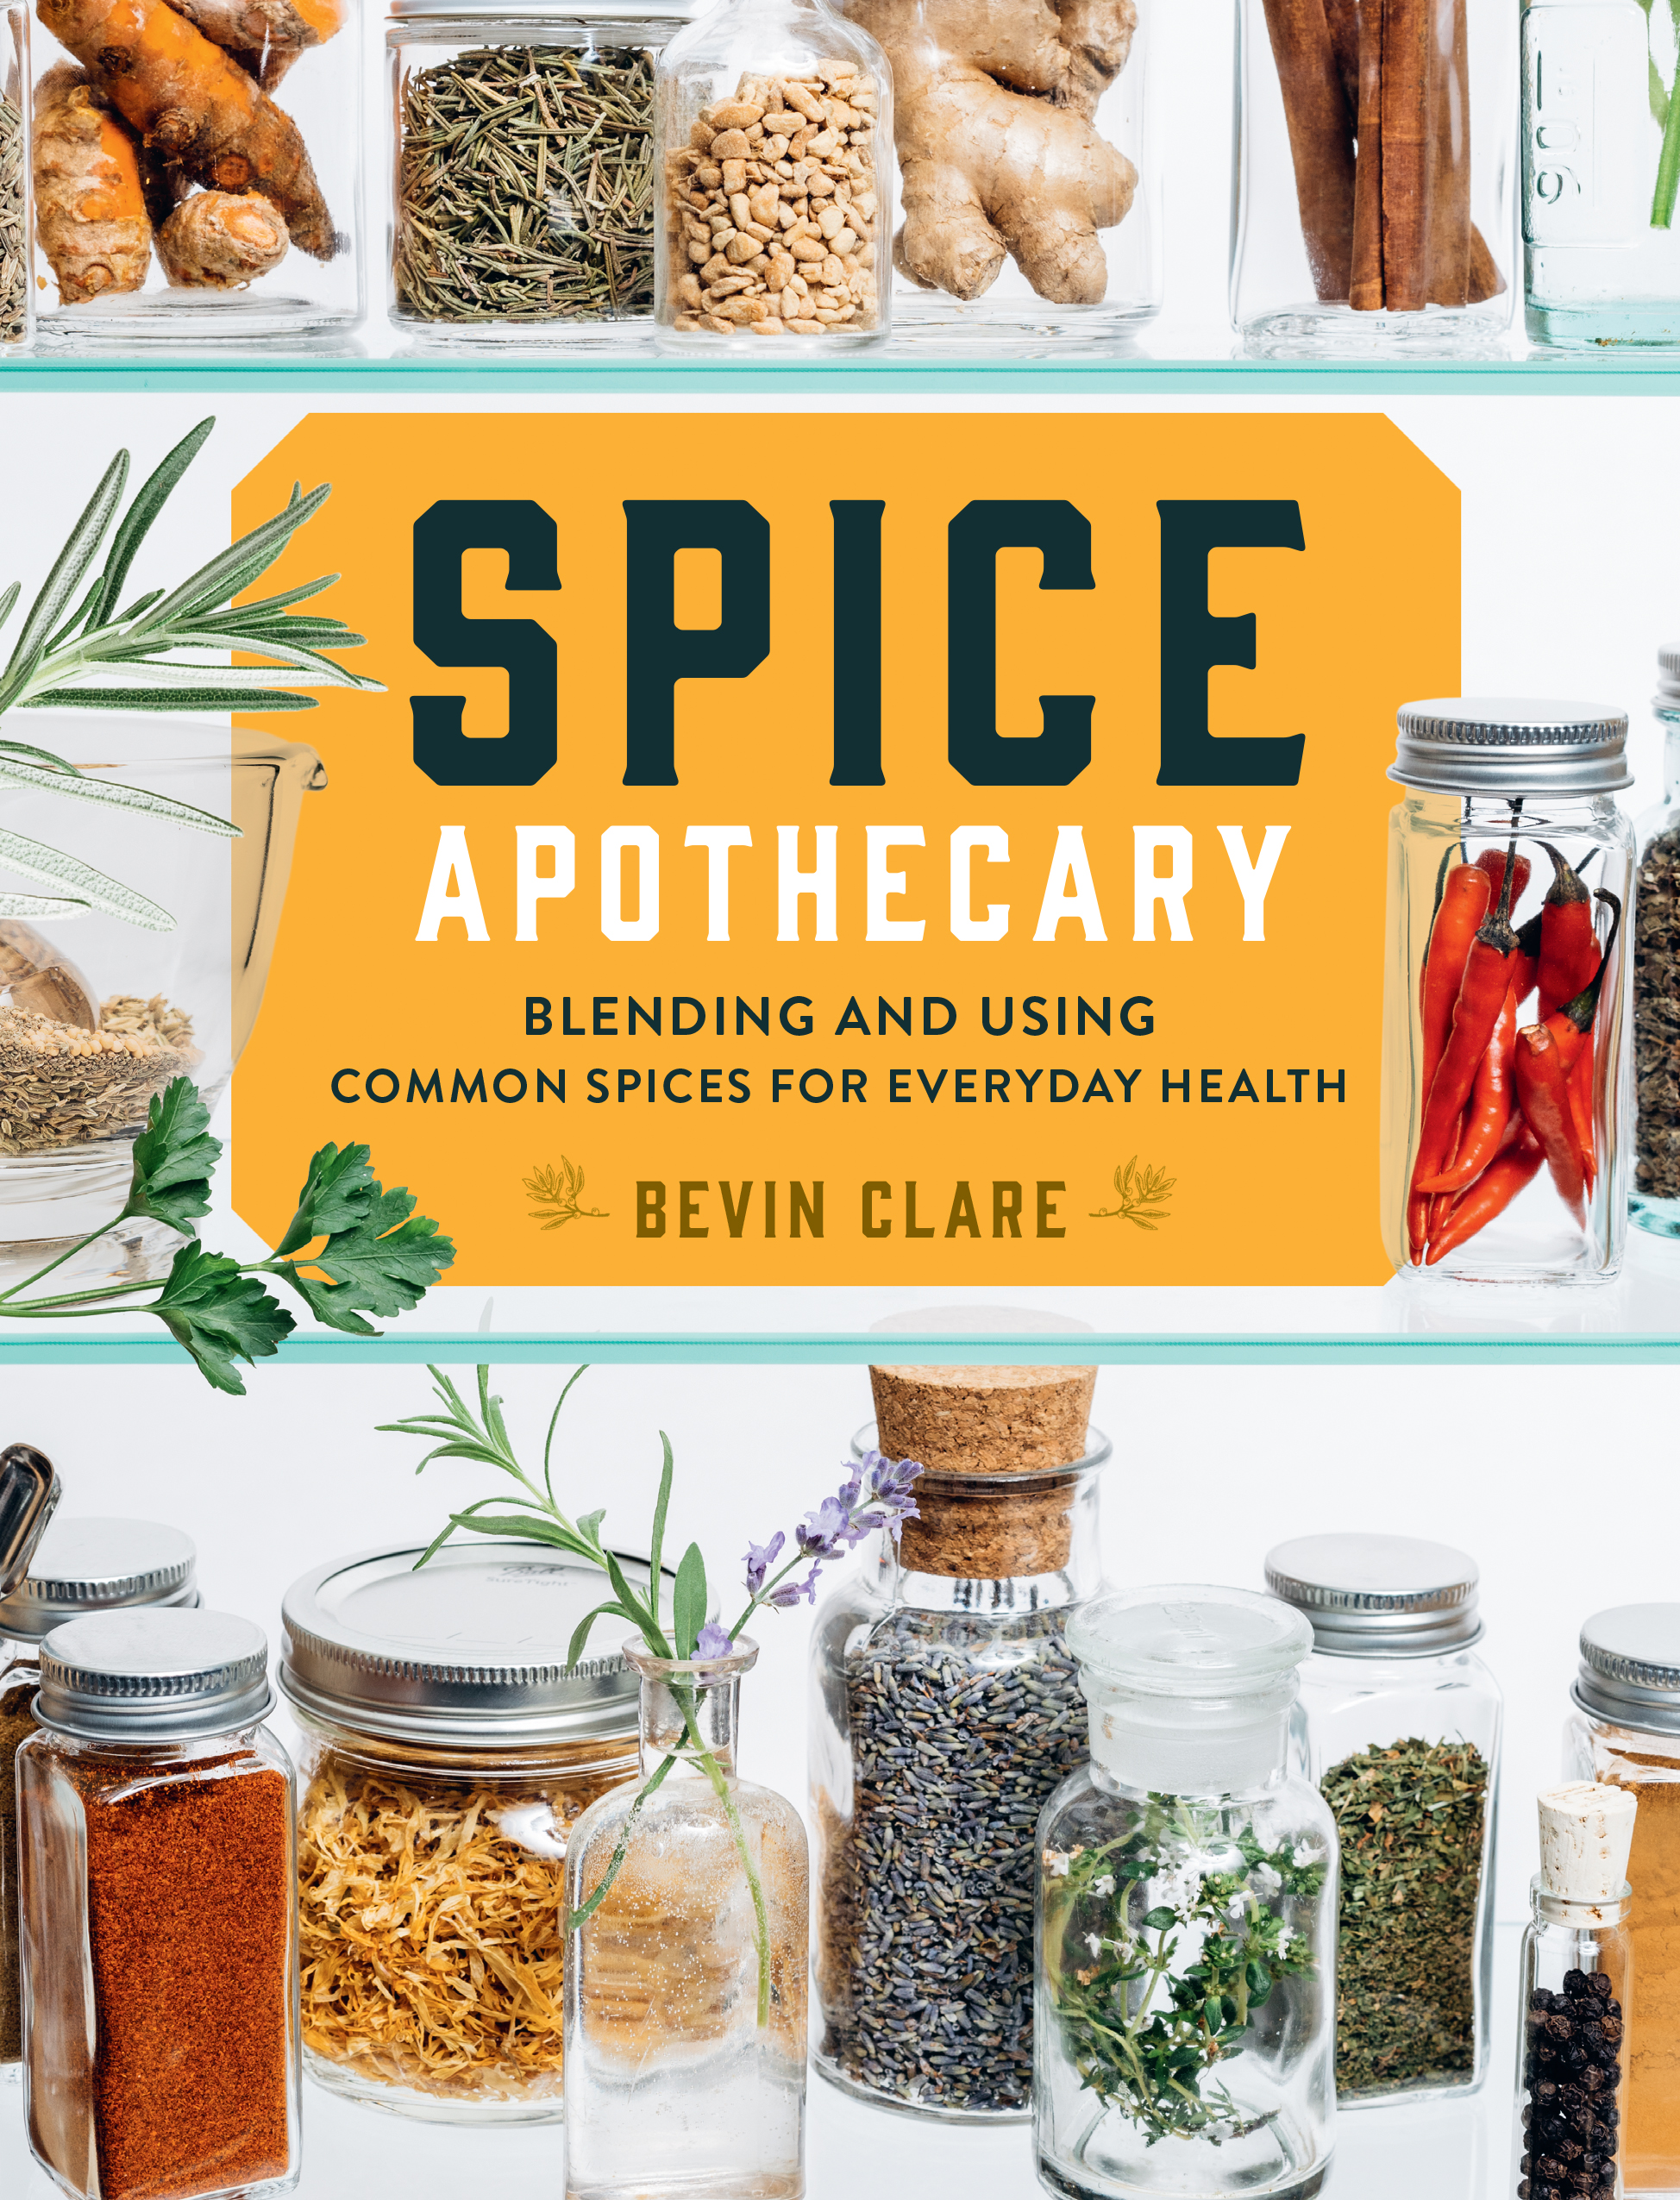 Spice Apothecary Blending and Using Common Spices for Everyday Health - Bevin Clare